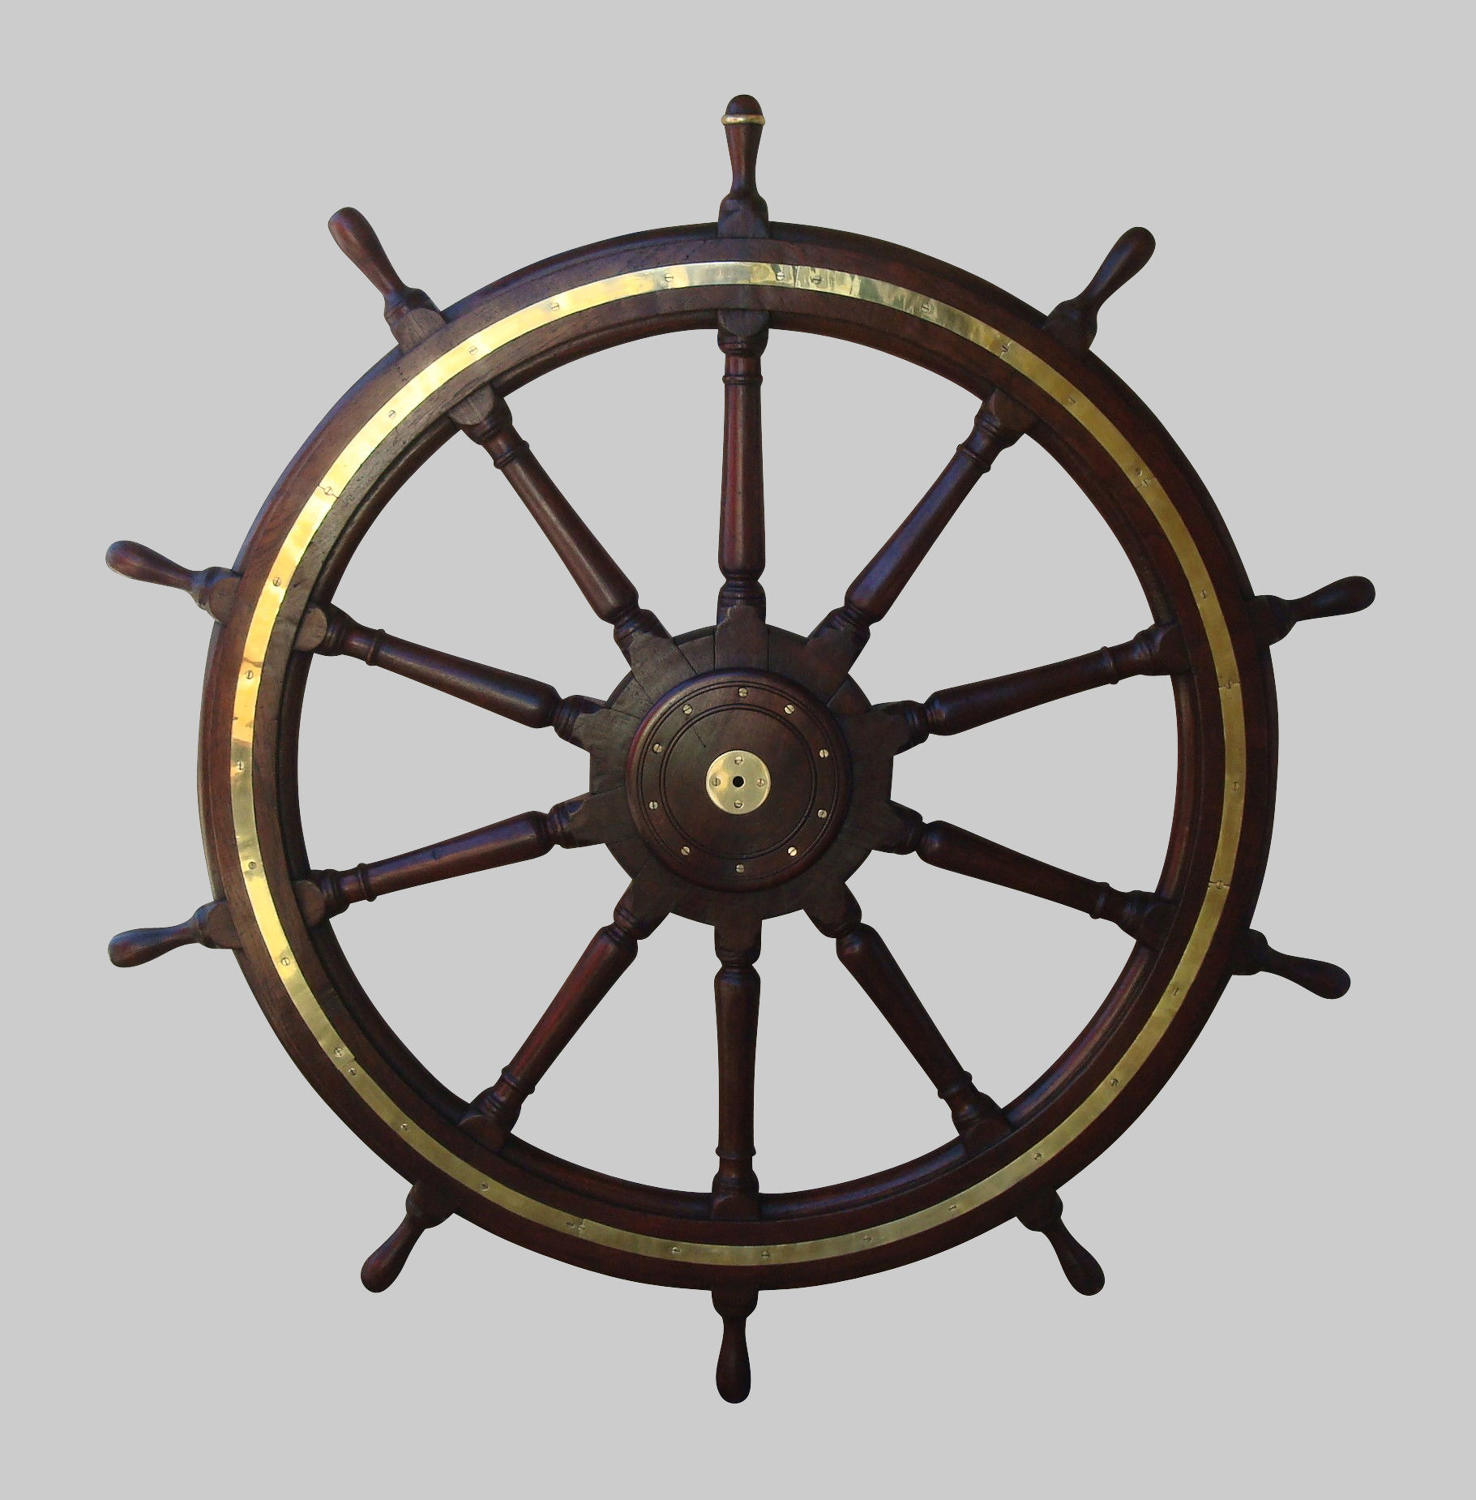 19th century very large teak ship's wheel